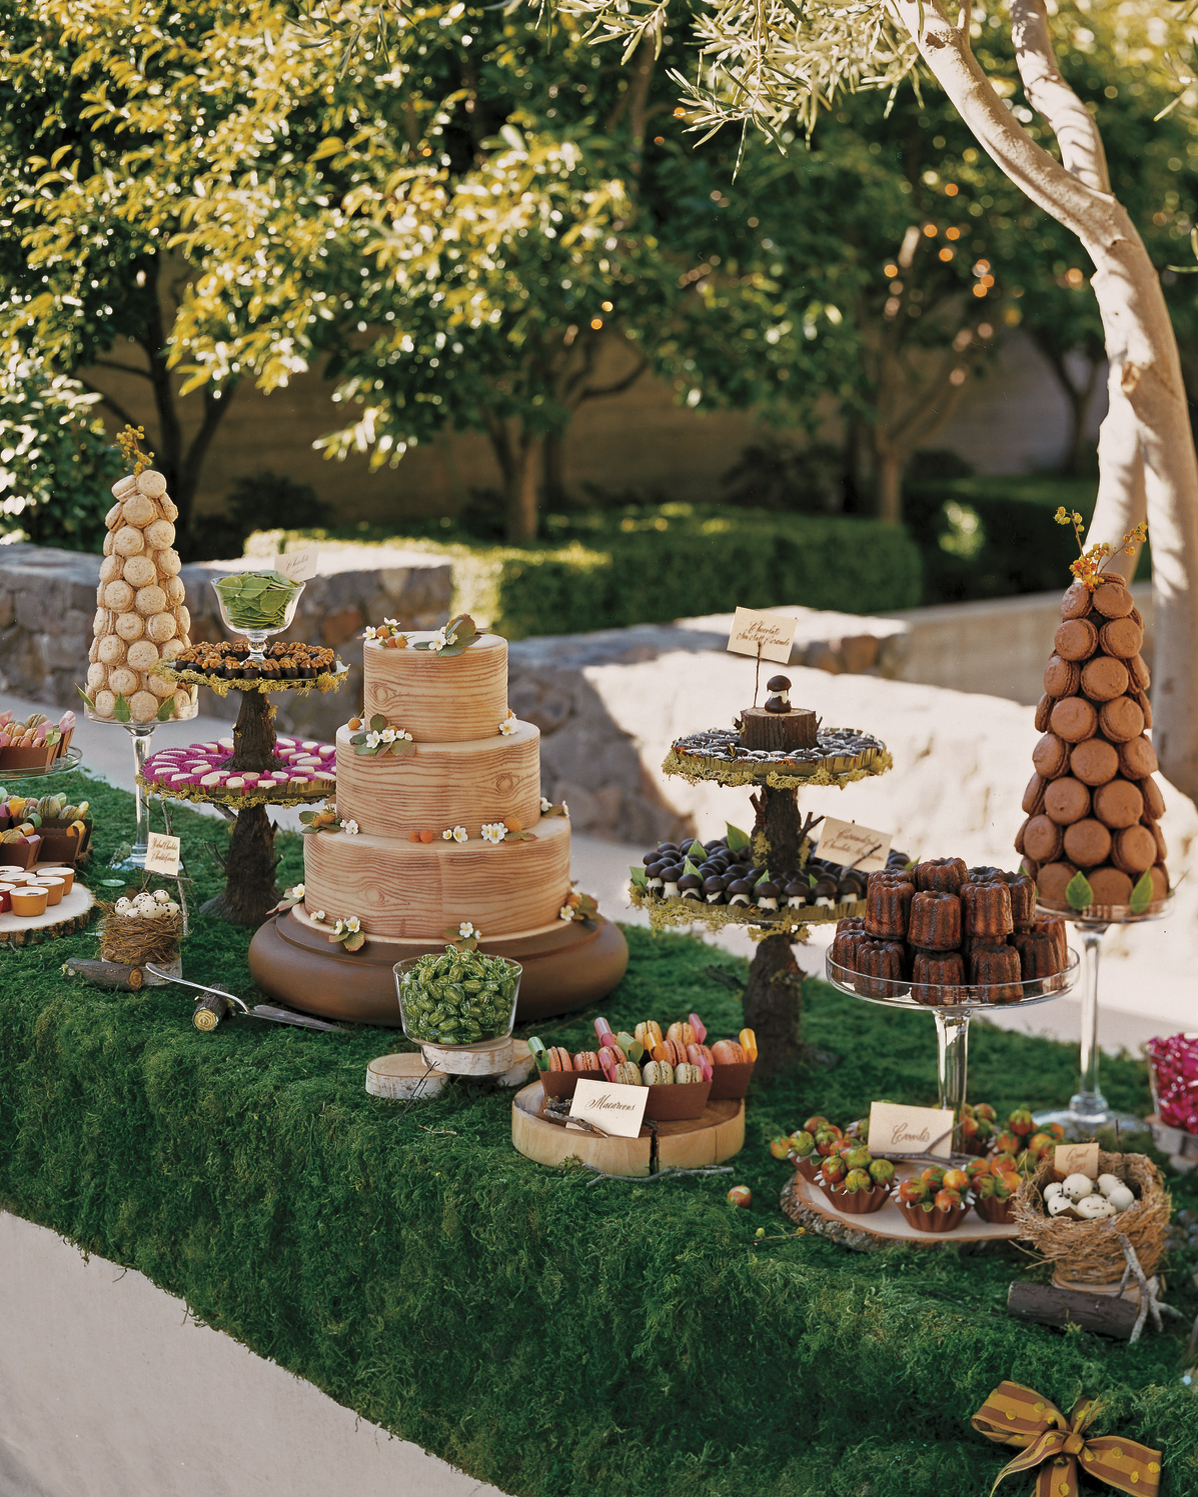 10 Amazing Dessert Tables from Real Weddings  Martha Stewart